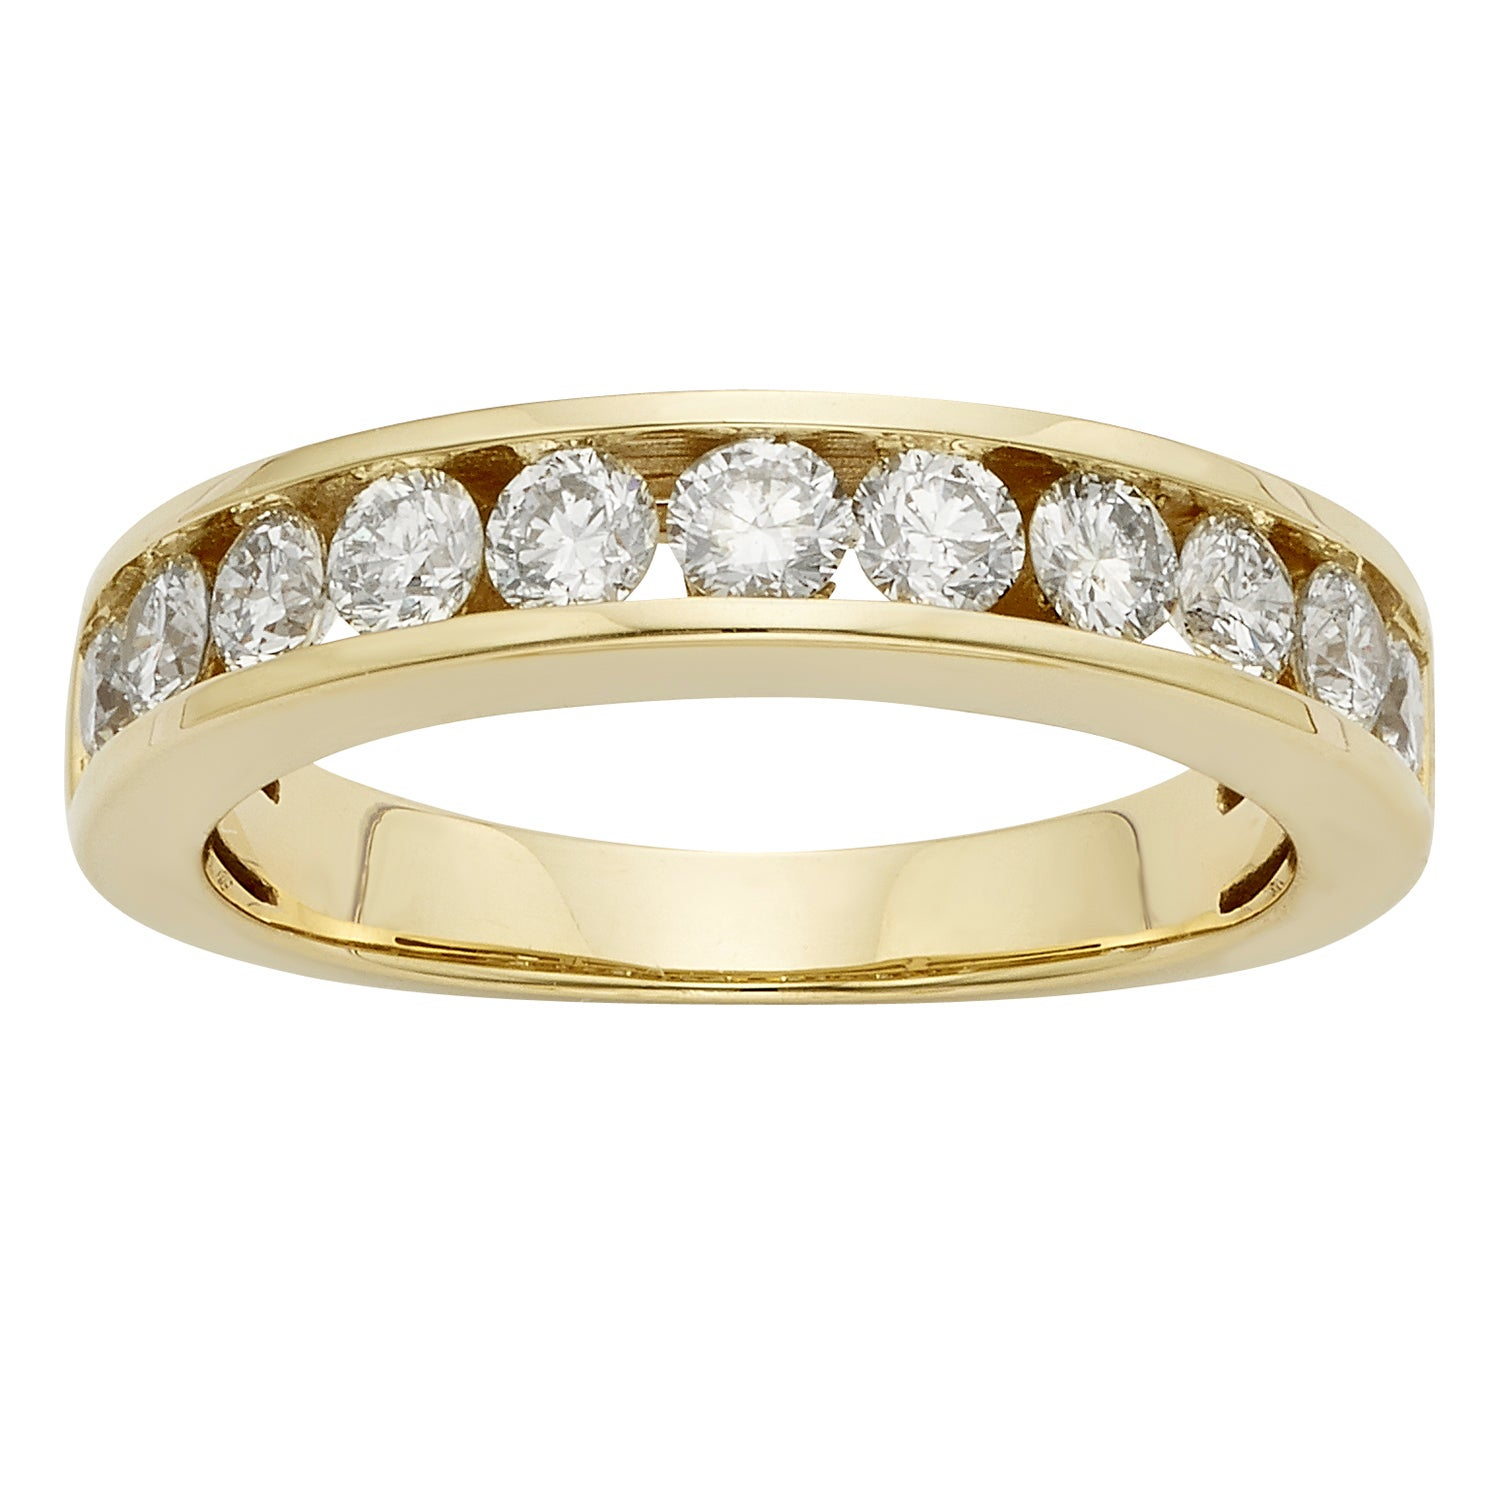 14K Certified 1Ct Diamond Wedding/anniversary Band Intended For Most Popular Certified Diamond Anniversary Bands In Gold (View 4 of 25)